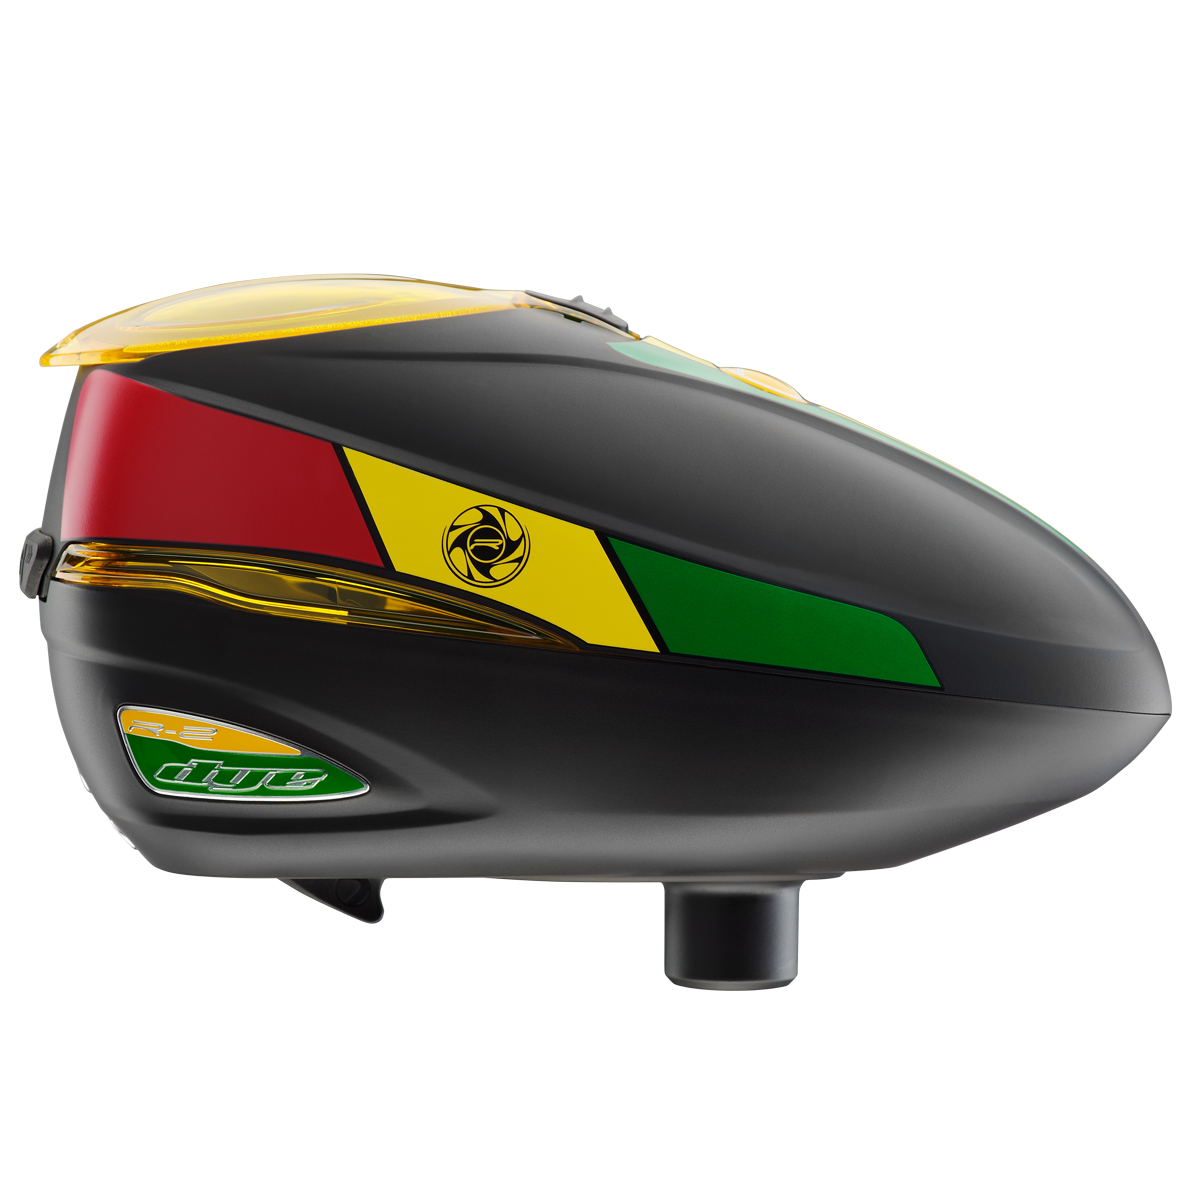 Dye Rotor R2 Paintball Loader - Rasta